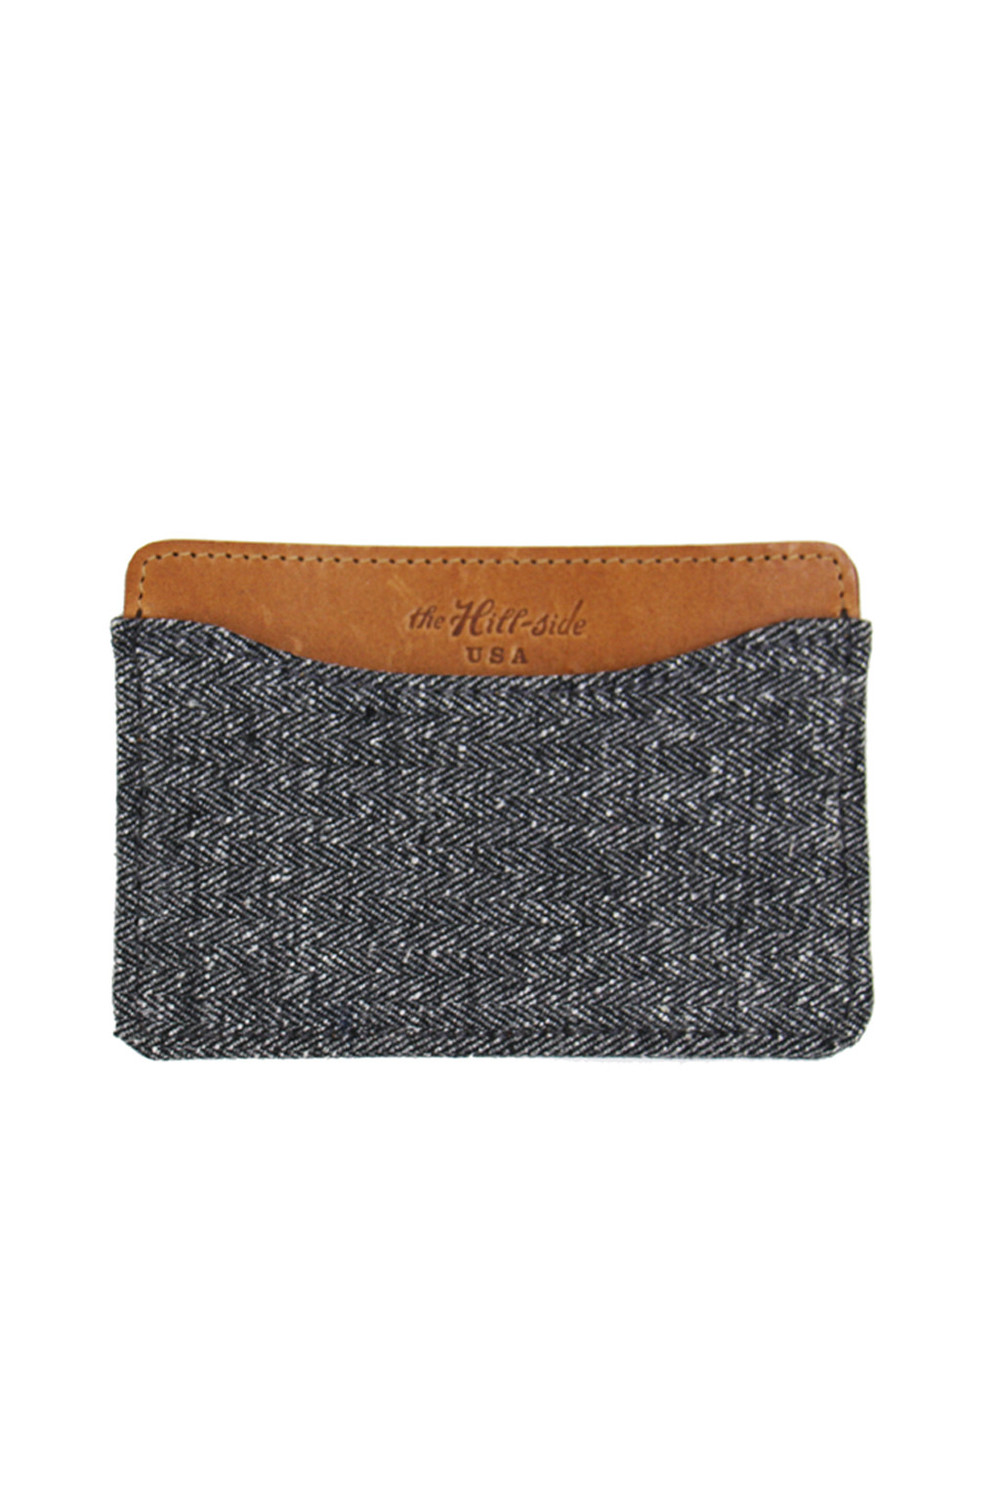 The Hill Side Cotton Herringbon Grey Tweed Card Case. Hammer + Awl. $110.